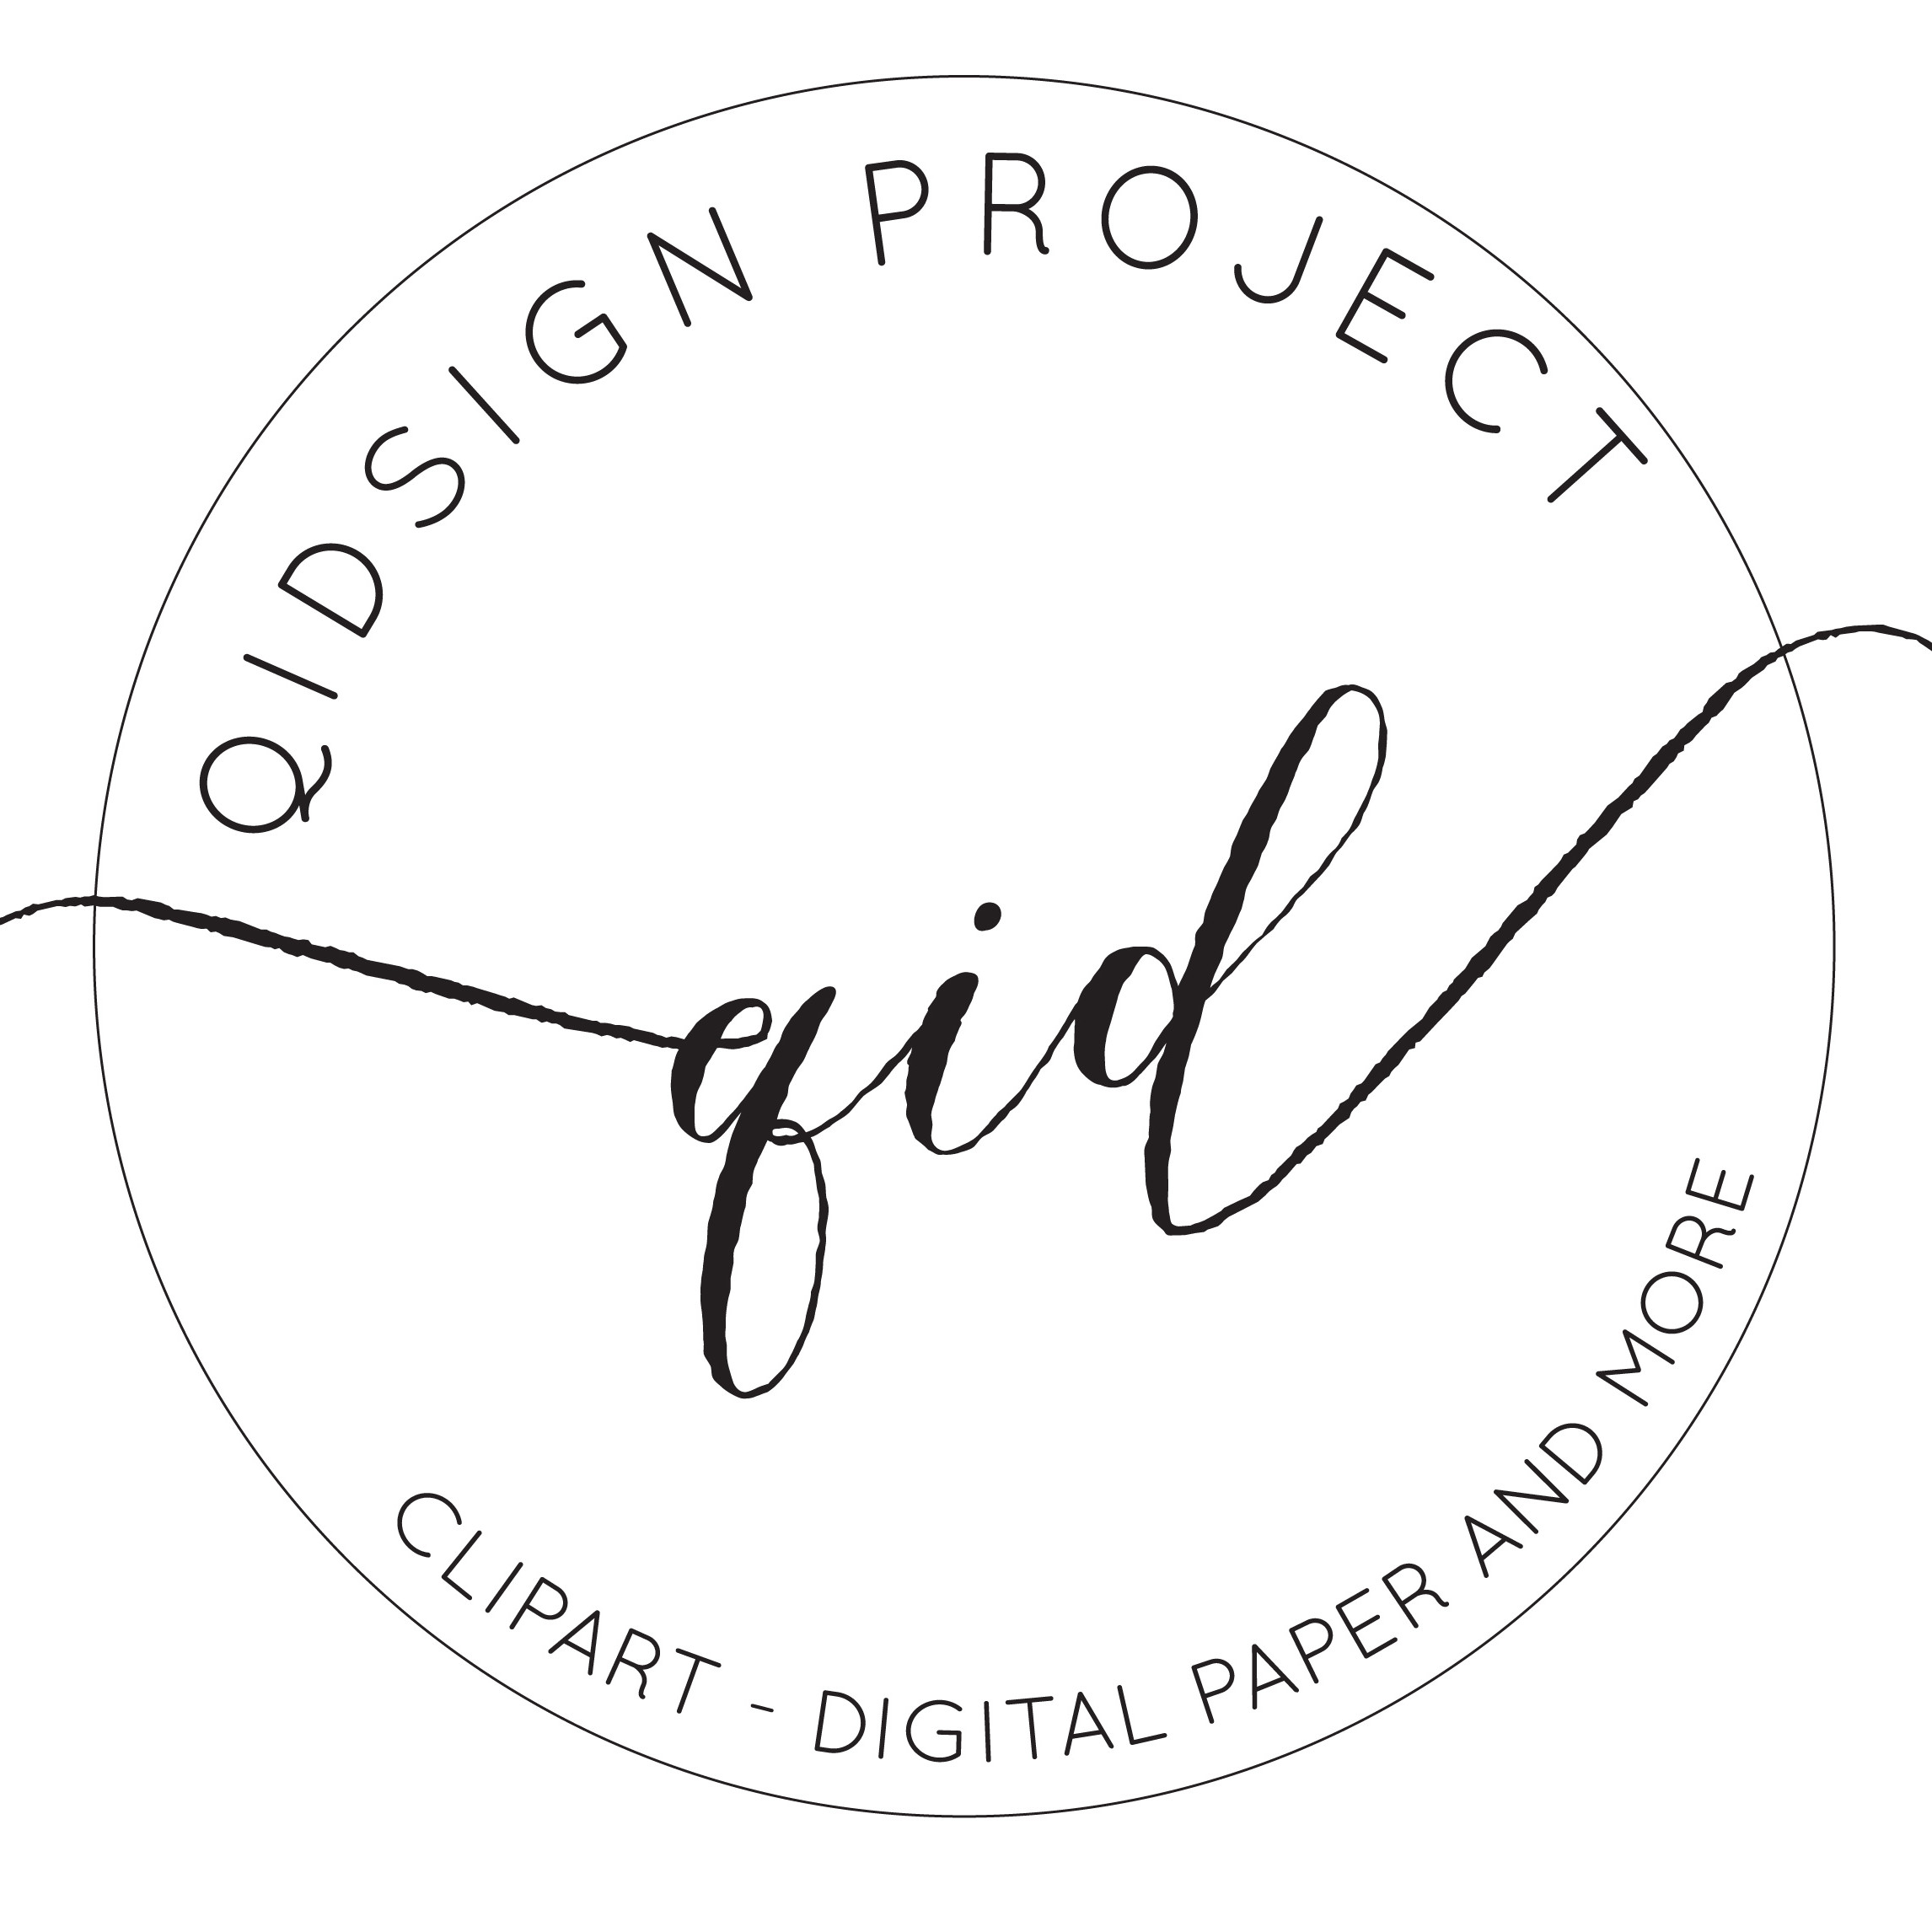 Qidsign Project's profile picture